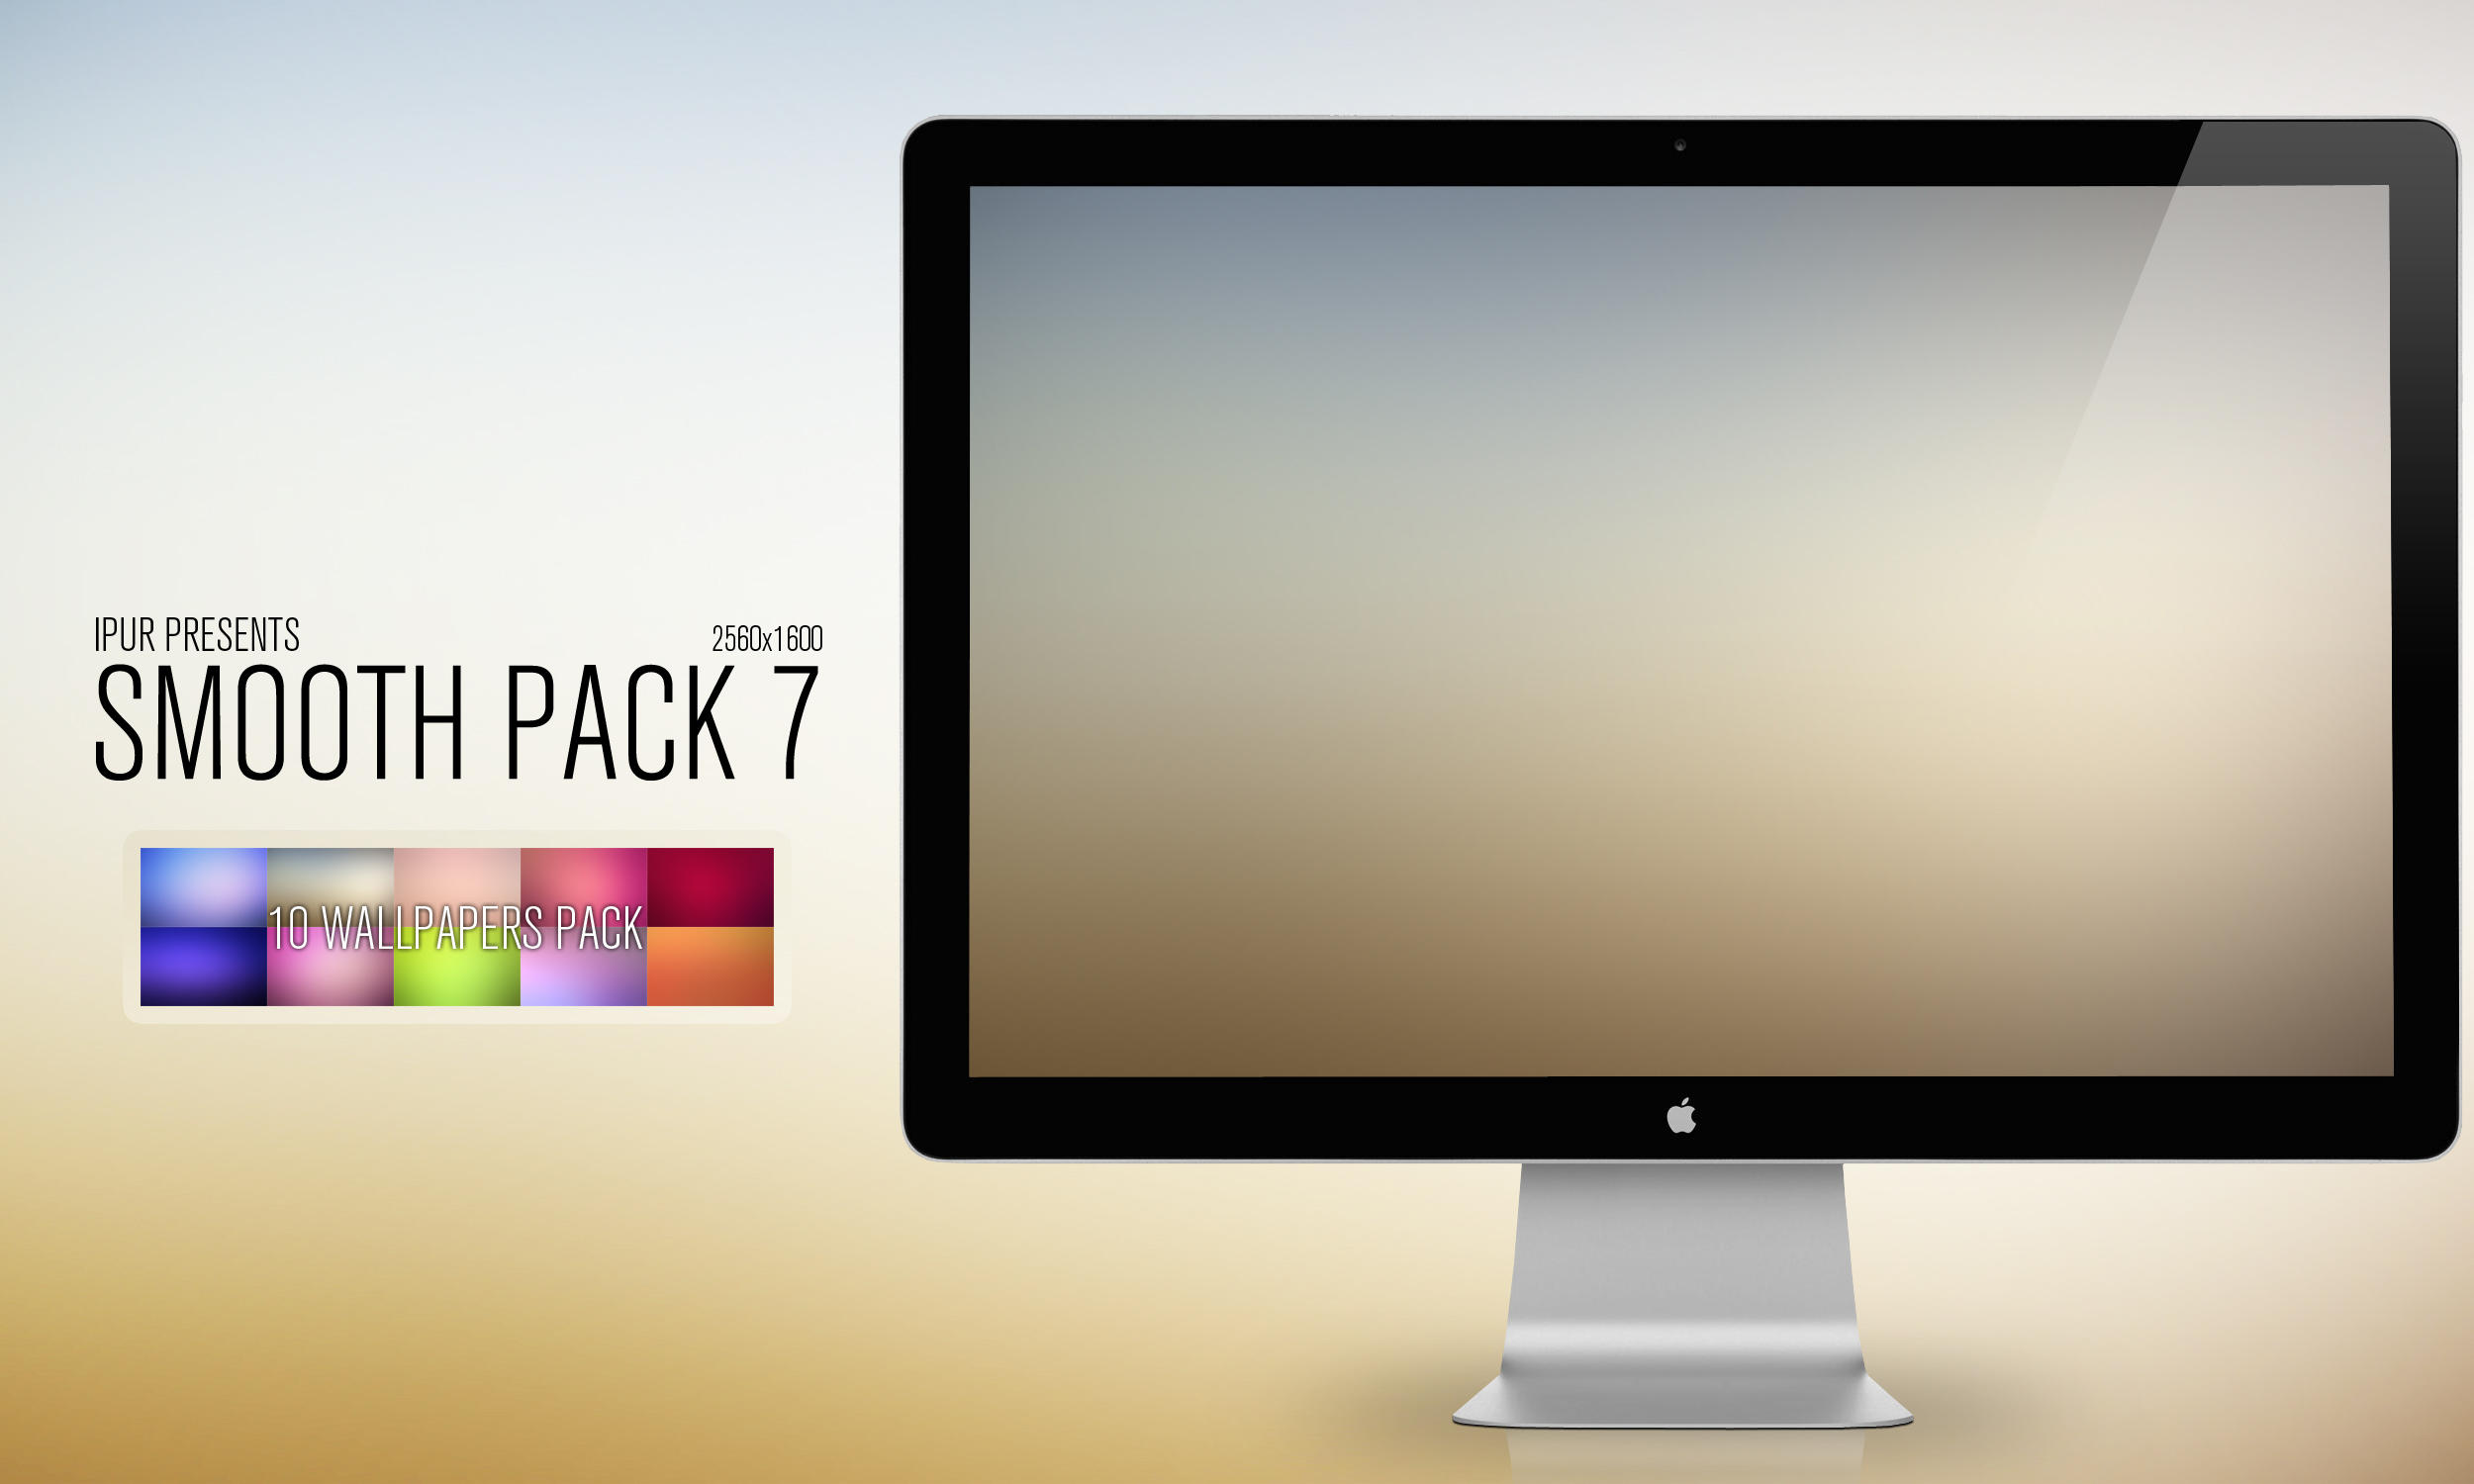 Smooth Pack 7 by iPur